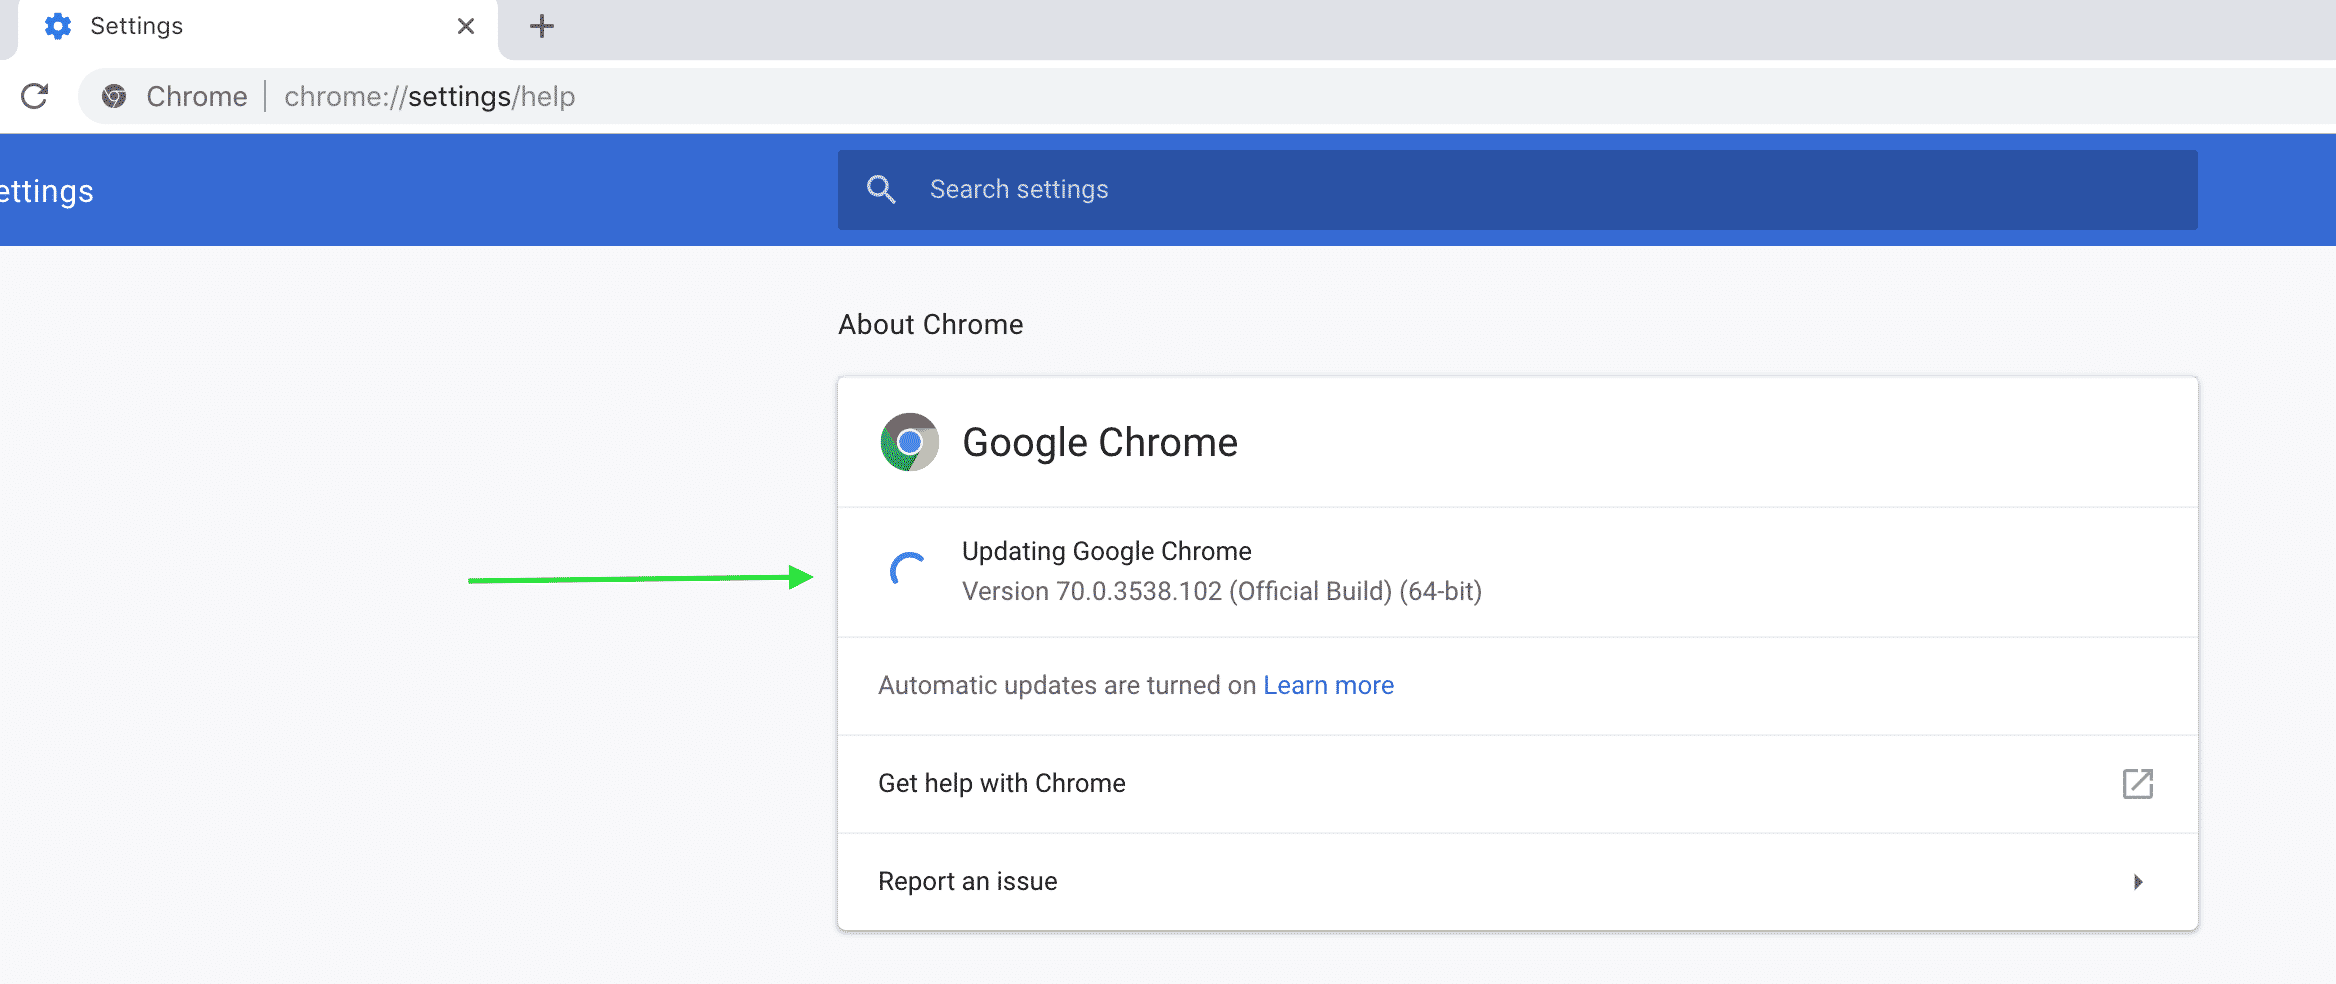 How to Update Google Chrome to the Latest Version - Chrome Story